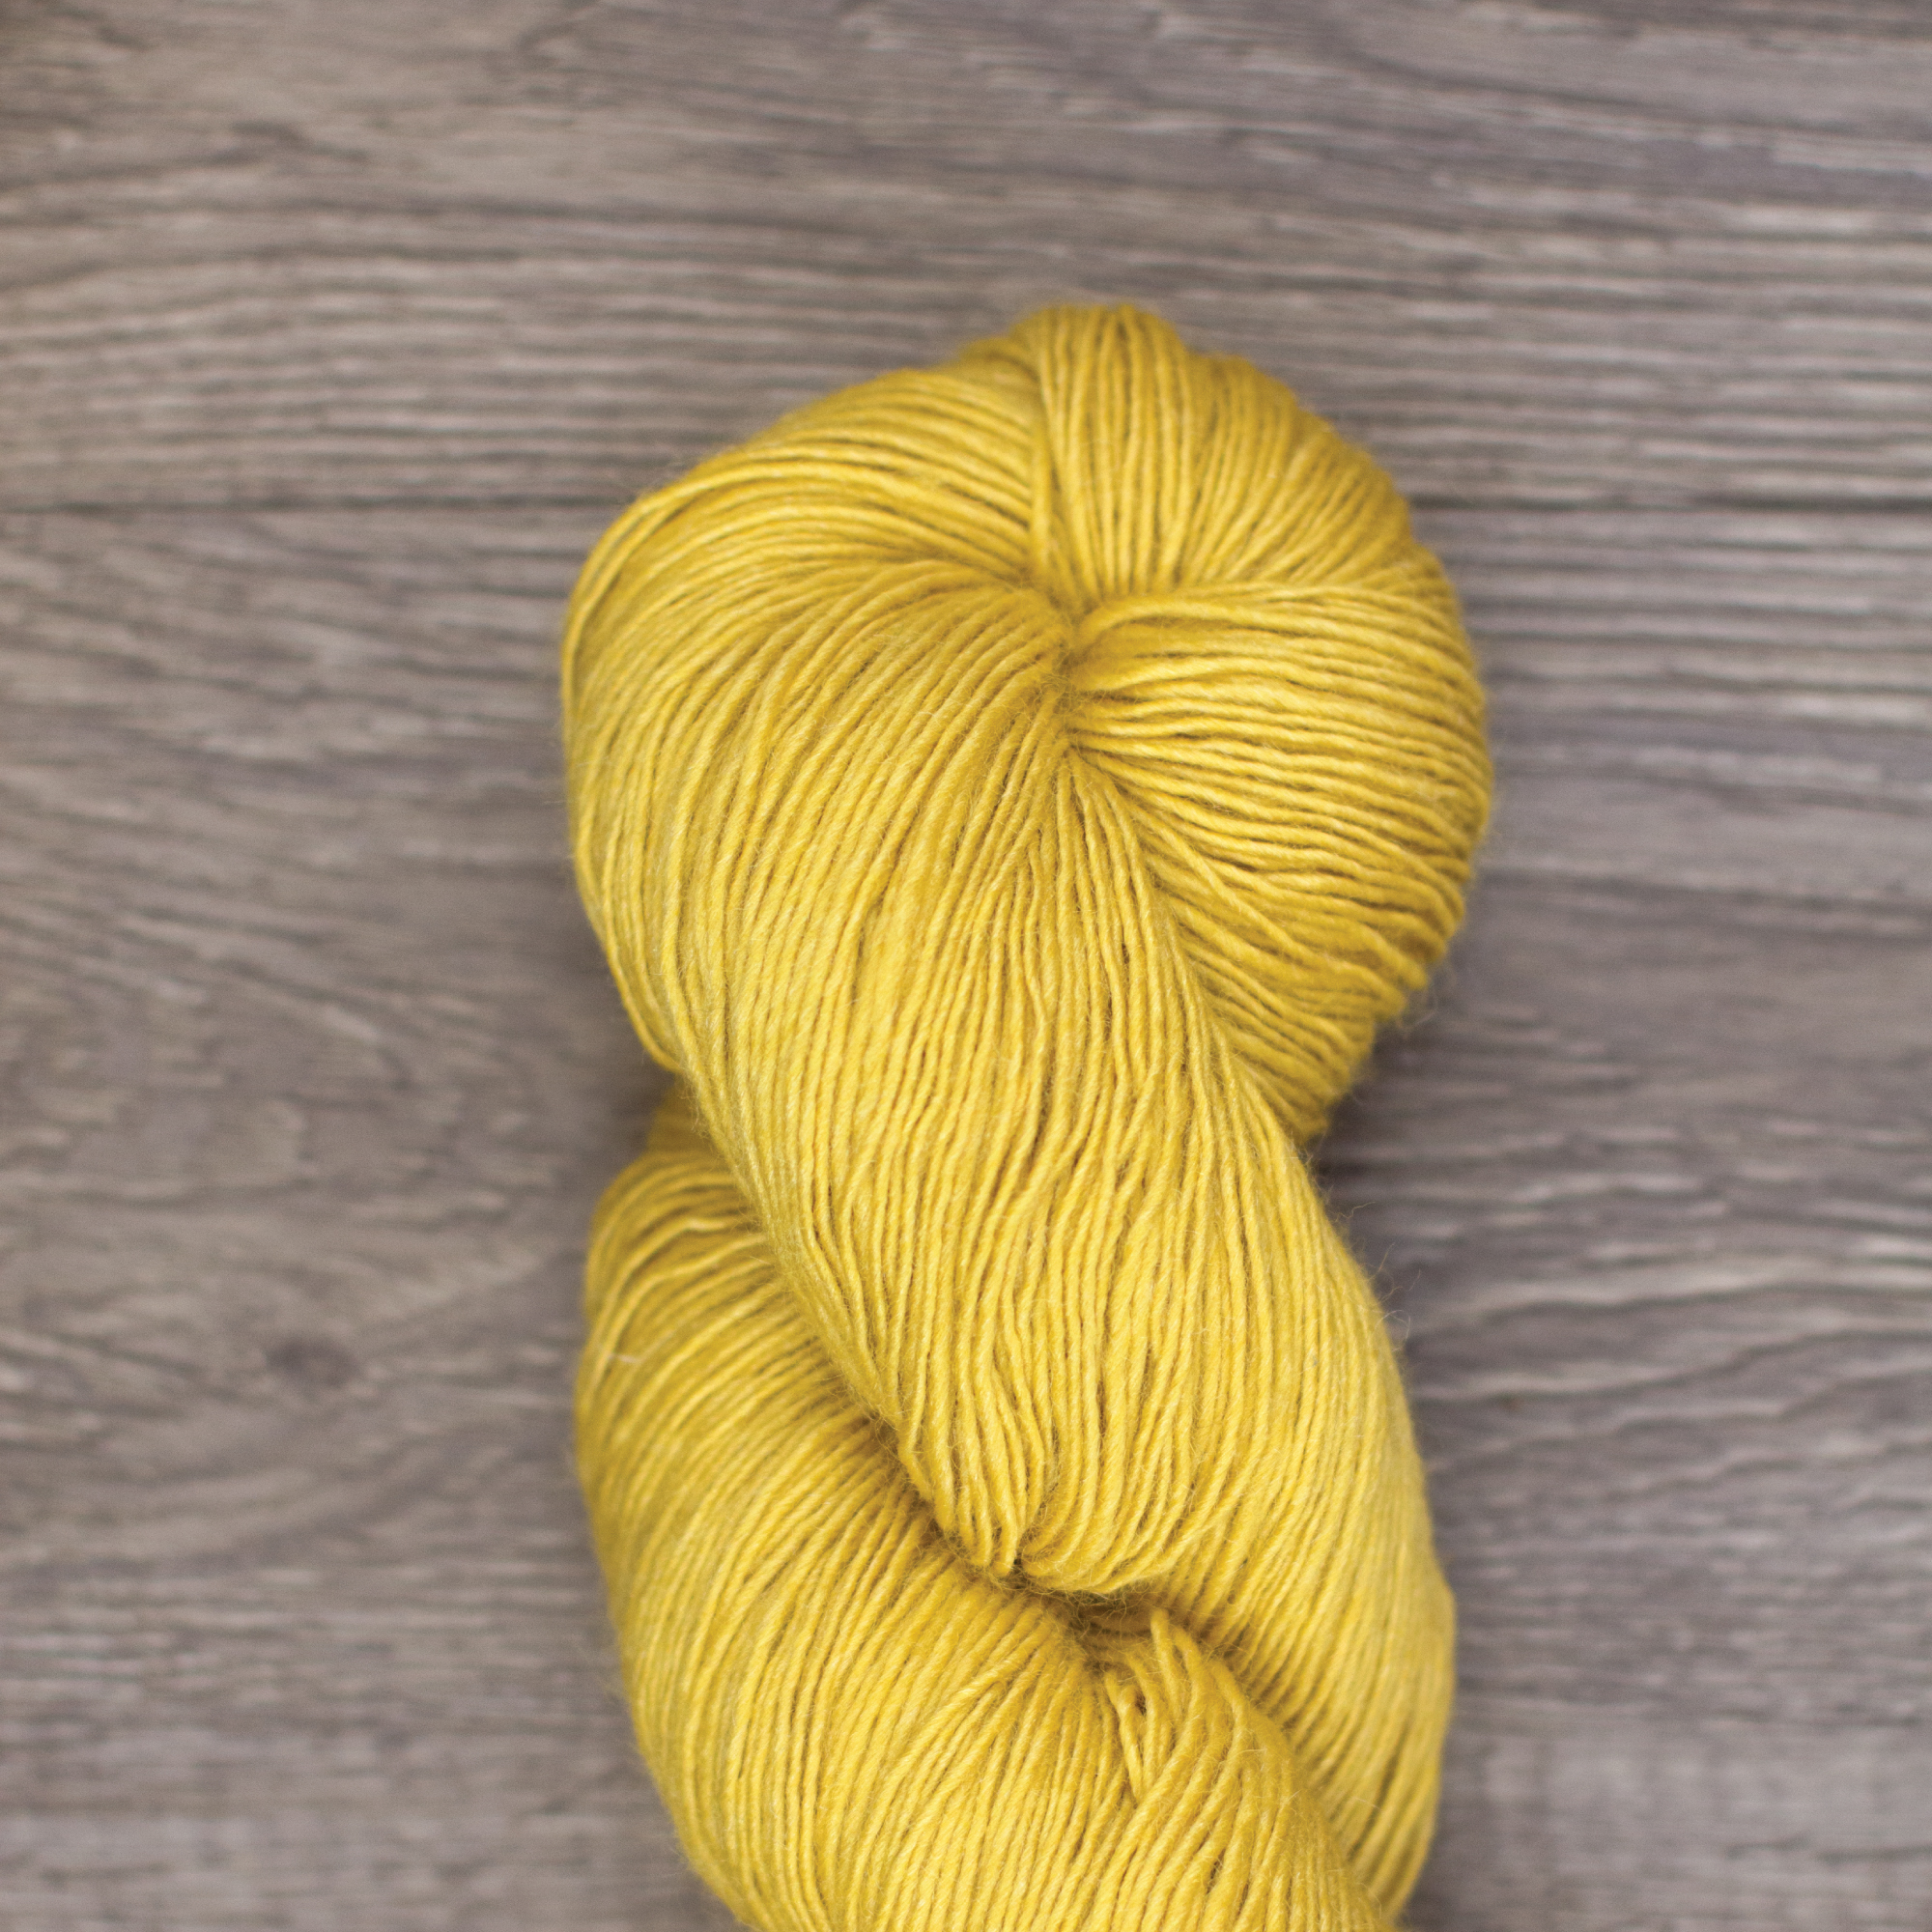 FILO by Cloud9 Fibers — 900028 | AMBER WAVES